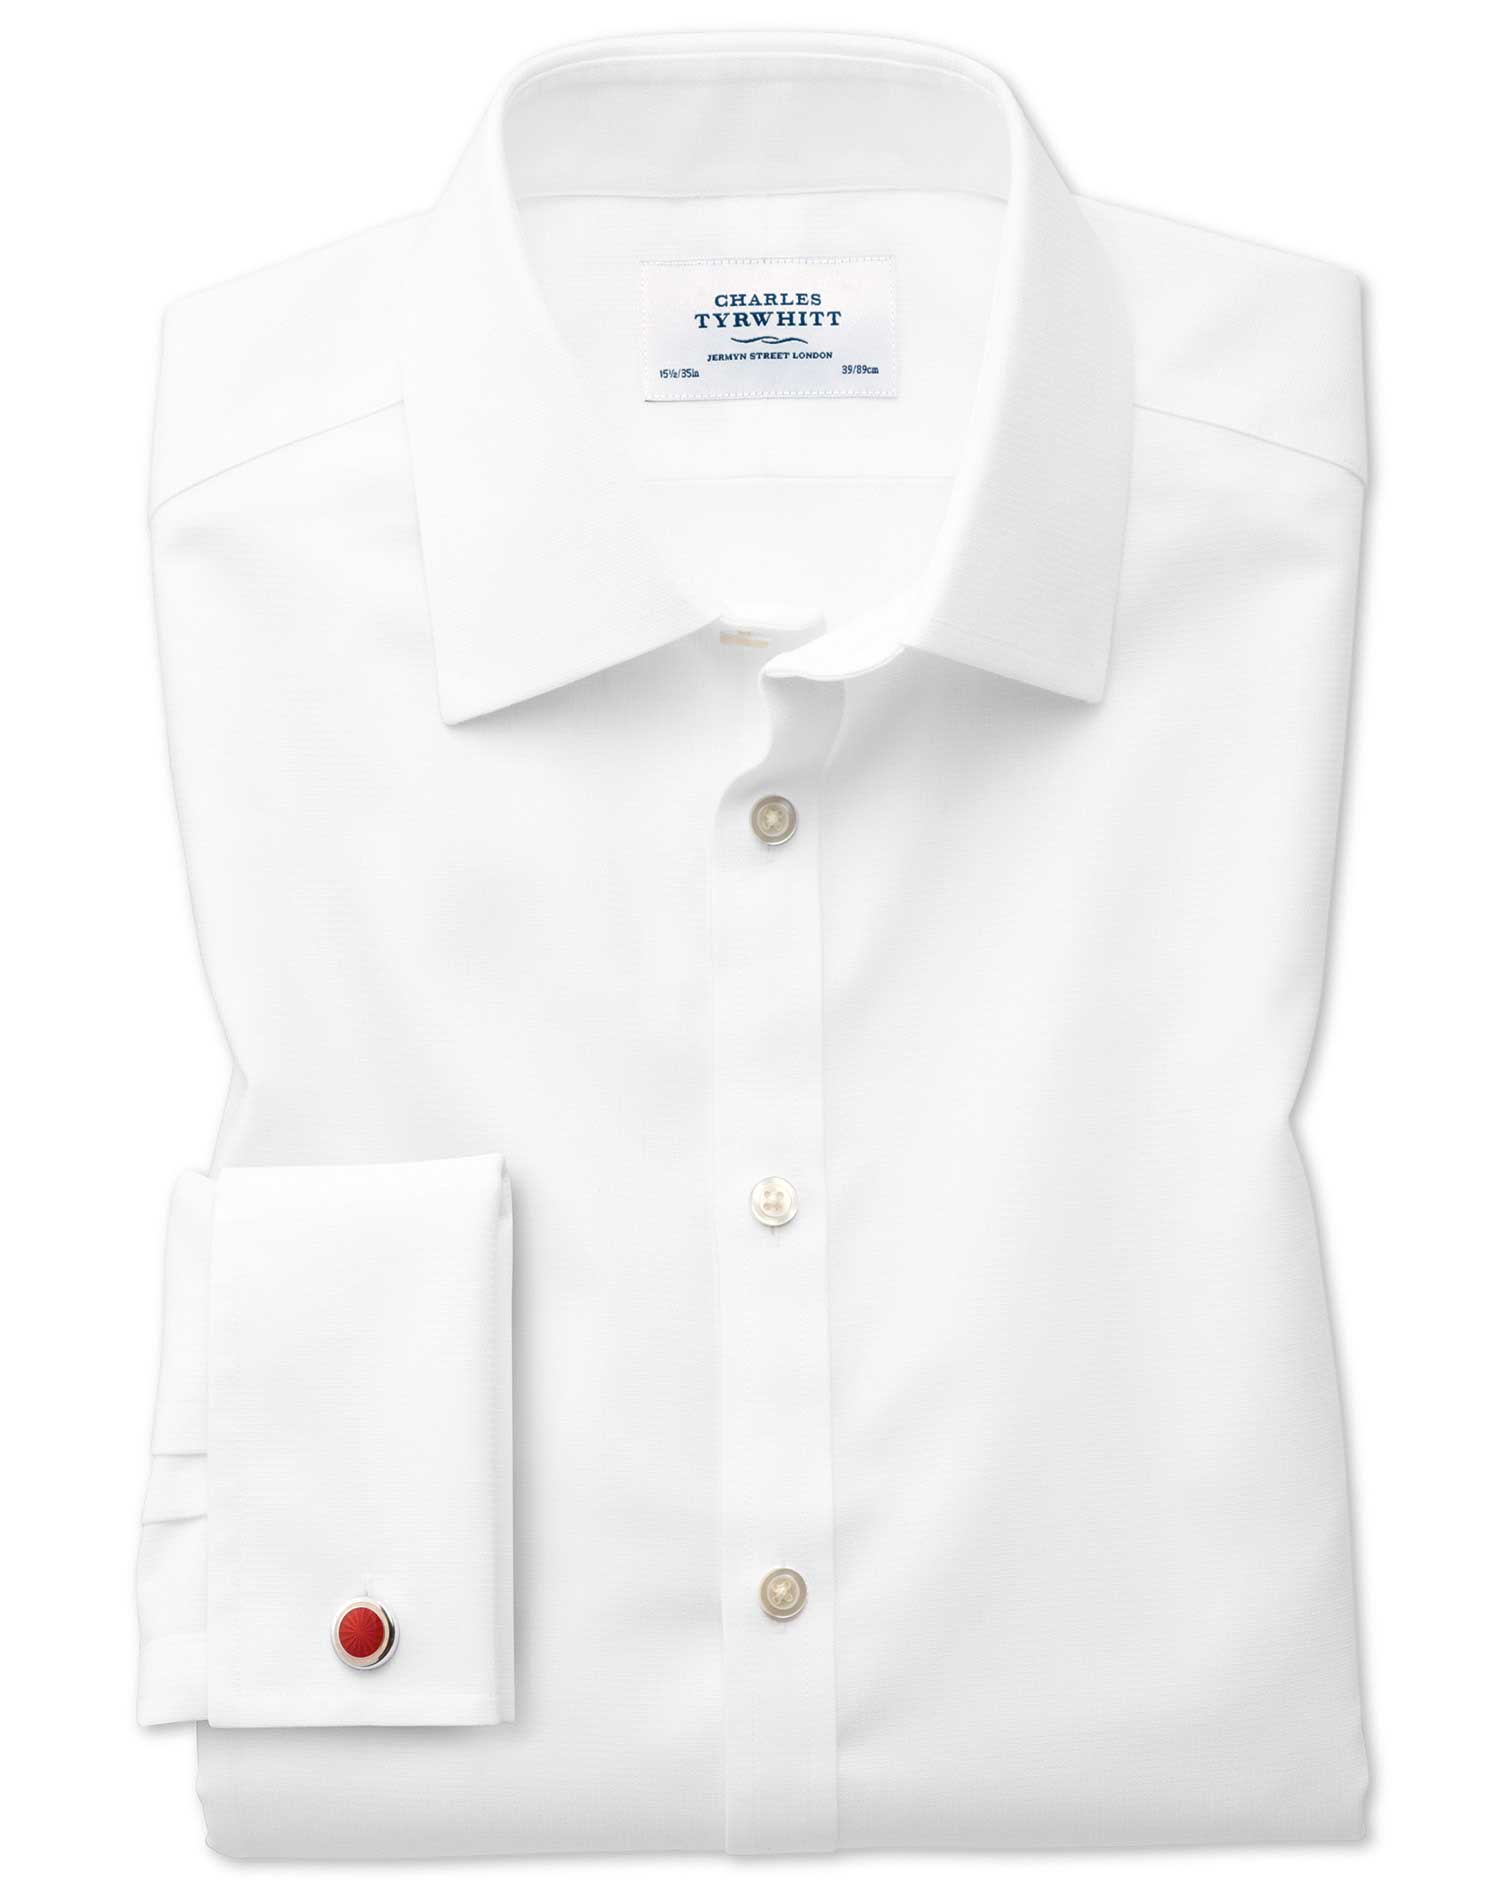 Extra Slim Fit Non-Iron Square Weave White Cotton Formal Shirt Double Cuff Size 15.5/33 by Charles T